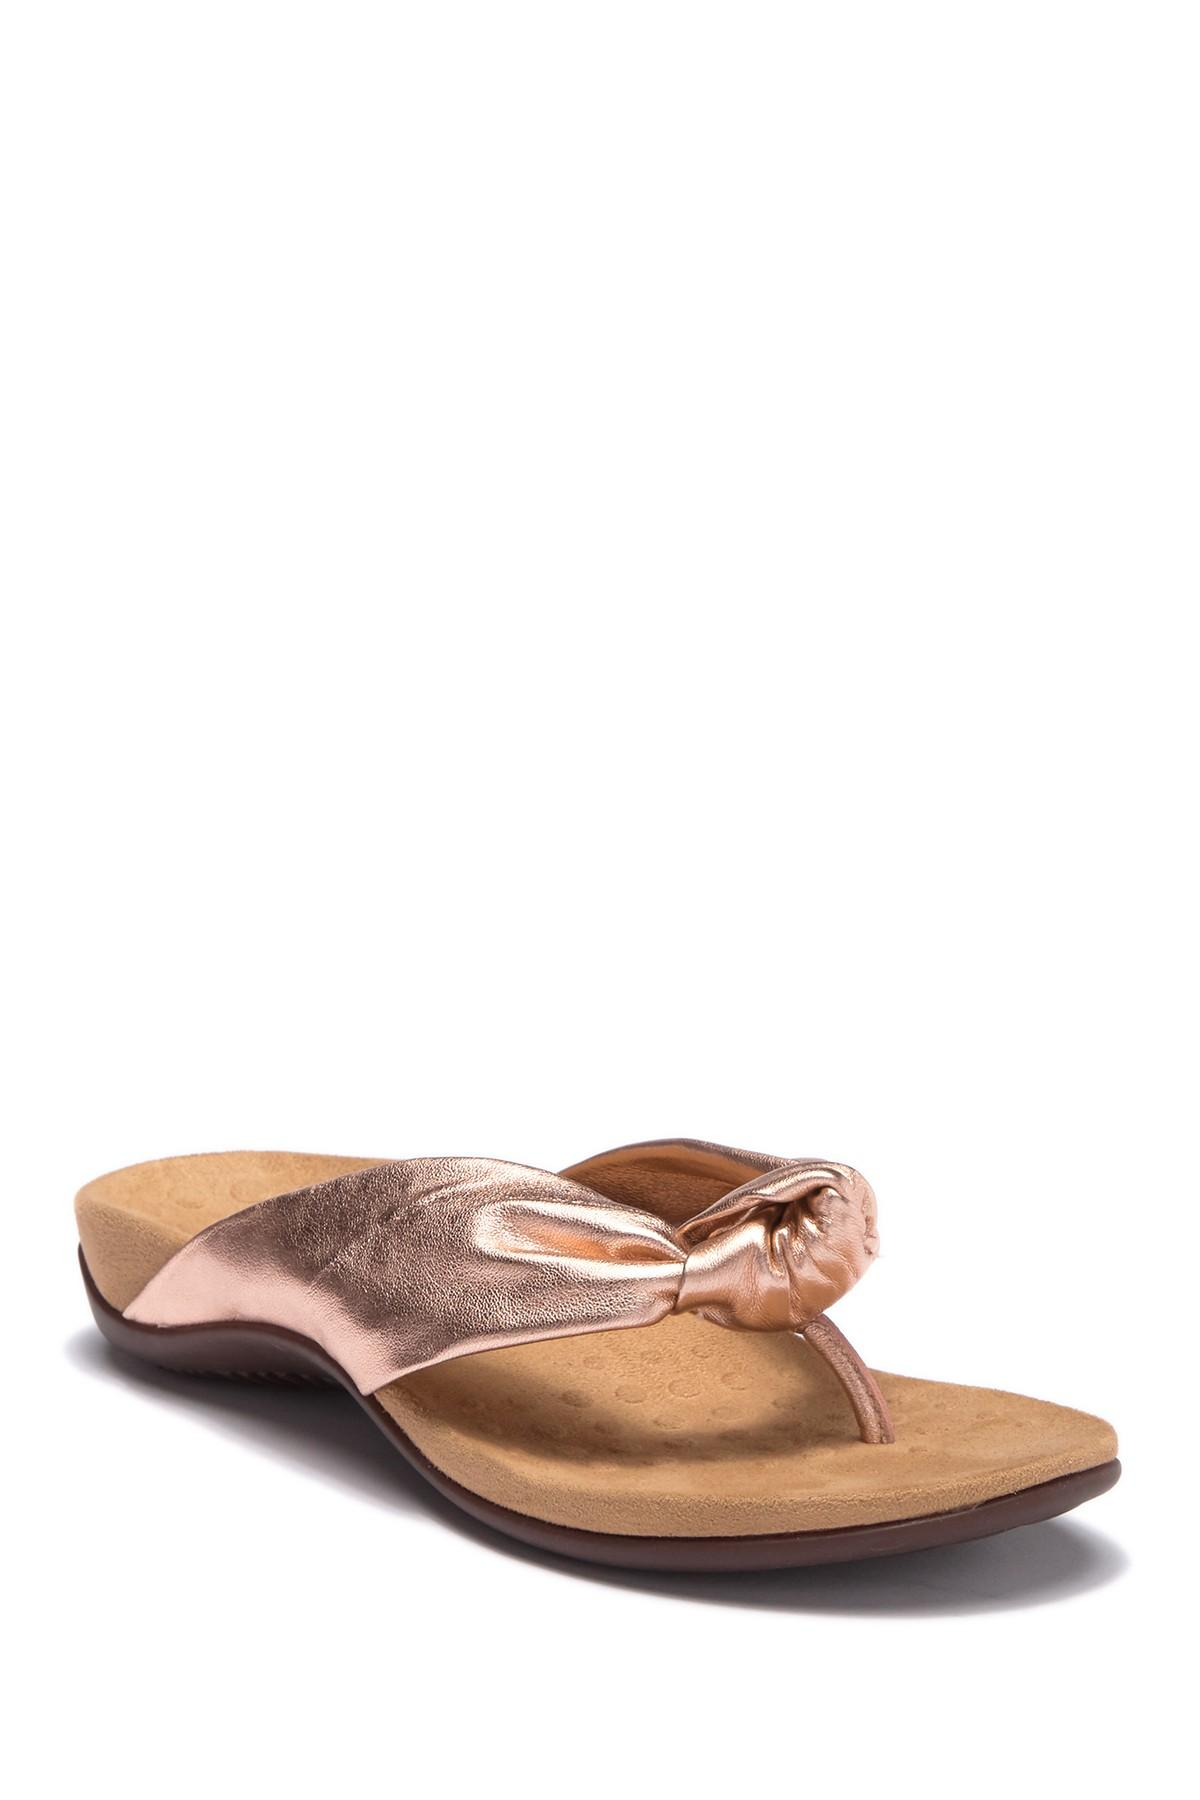 9310ffa71eb Vionic. Women s Pippa Twisted Knot Sandal - Wide Width Available